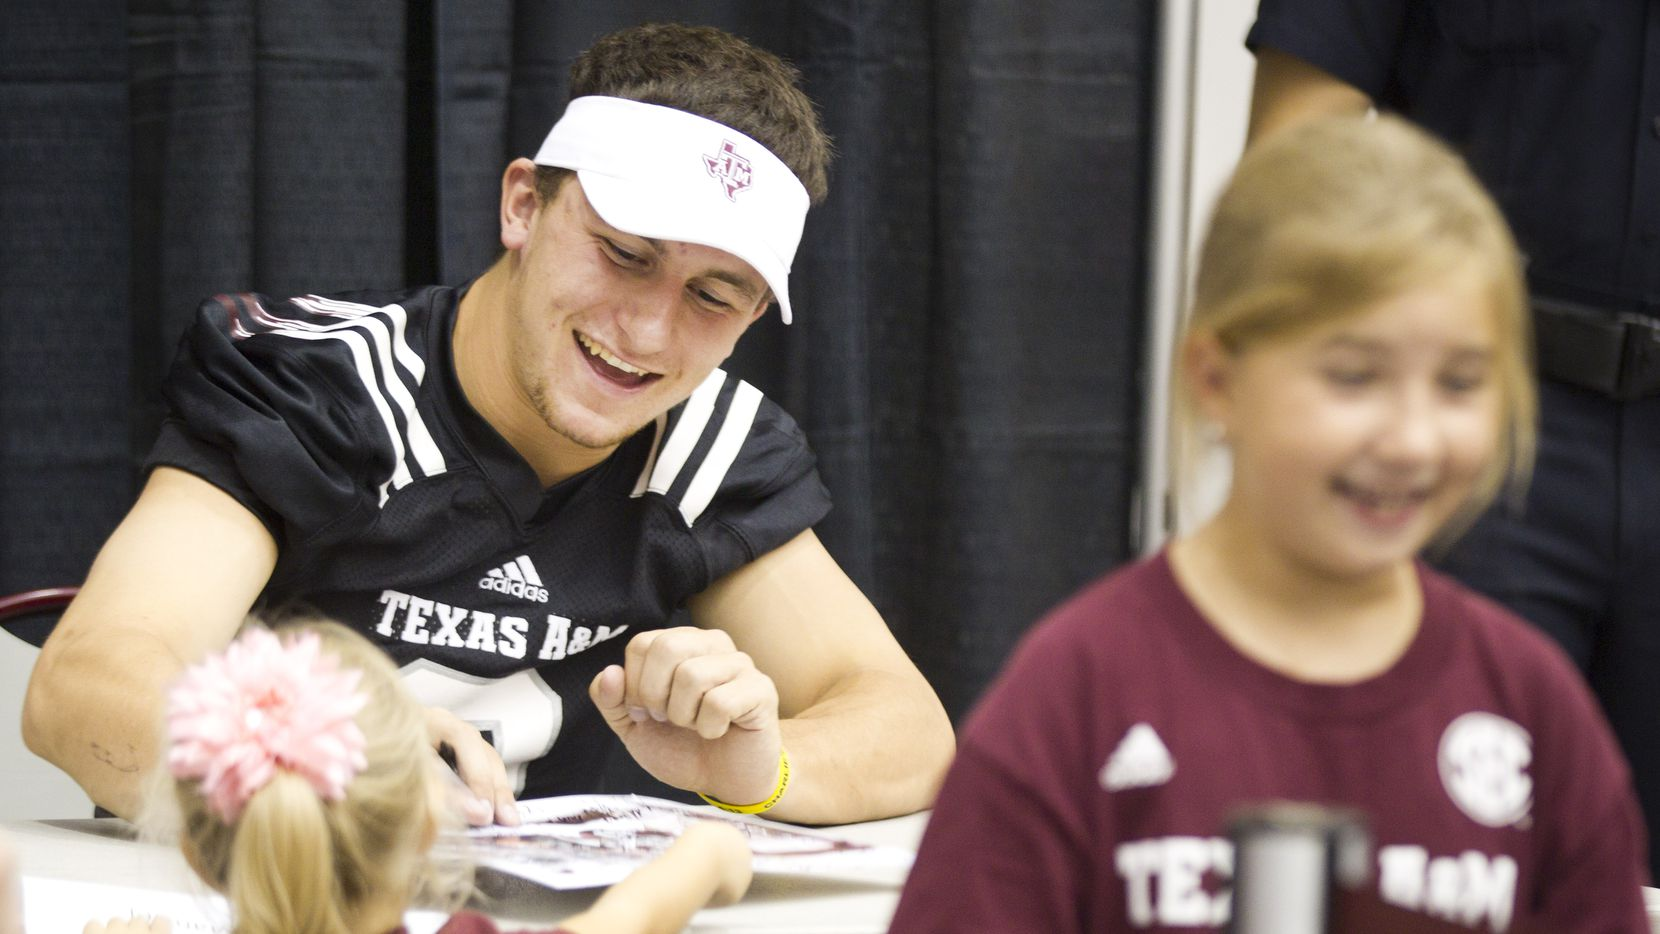 """Texas A&M quarterback Johnny Manziel signs autographs during the """"Meet the Aggies"""" event Saturday, Aug. 24, 2013, in College Station. Fans of the Texas A&M football team flocked to the Gilliam Indoor Track Complex to collect autographs and meet the Aggie players, one week prior to the team's season opener against Rice. ( Brett Coomer / Houston Chronicle ) ORG XMIT: 498538 08252013xSPORTS"""